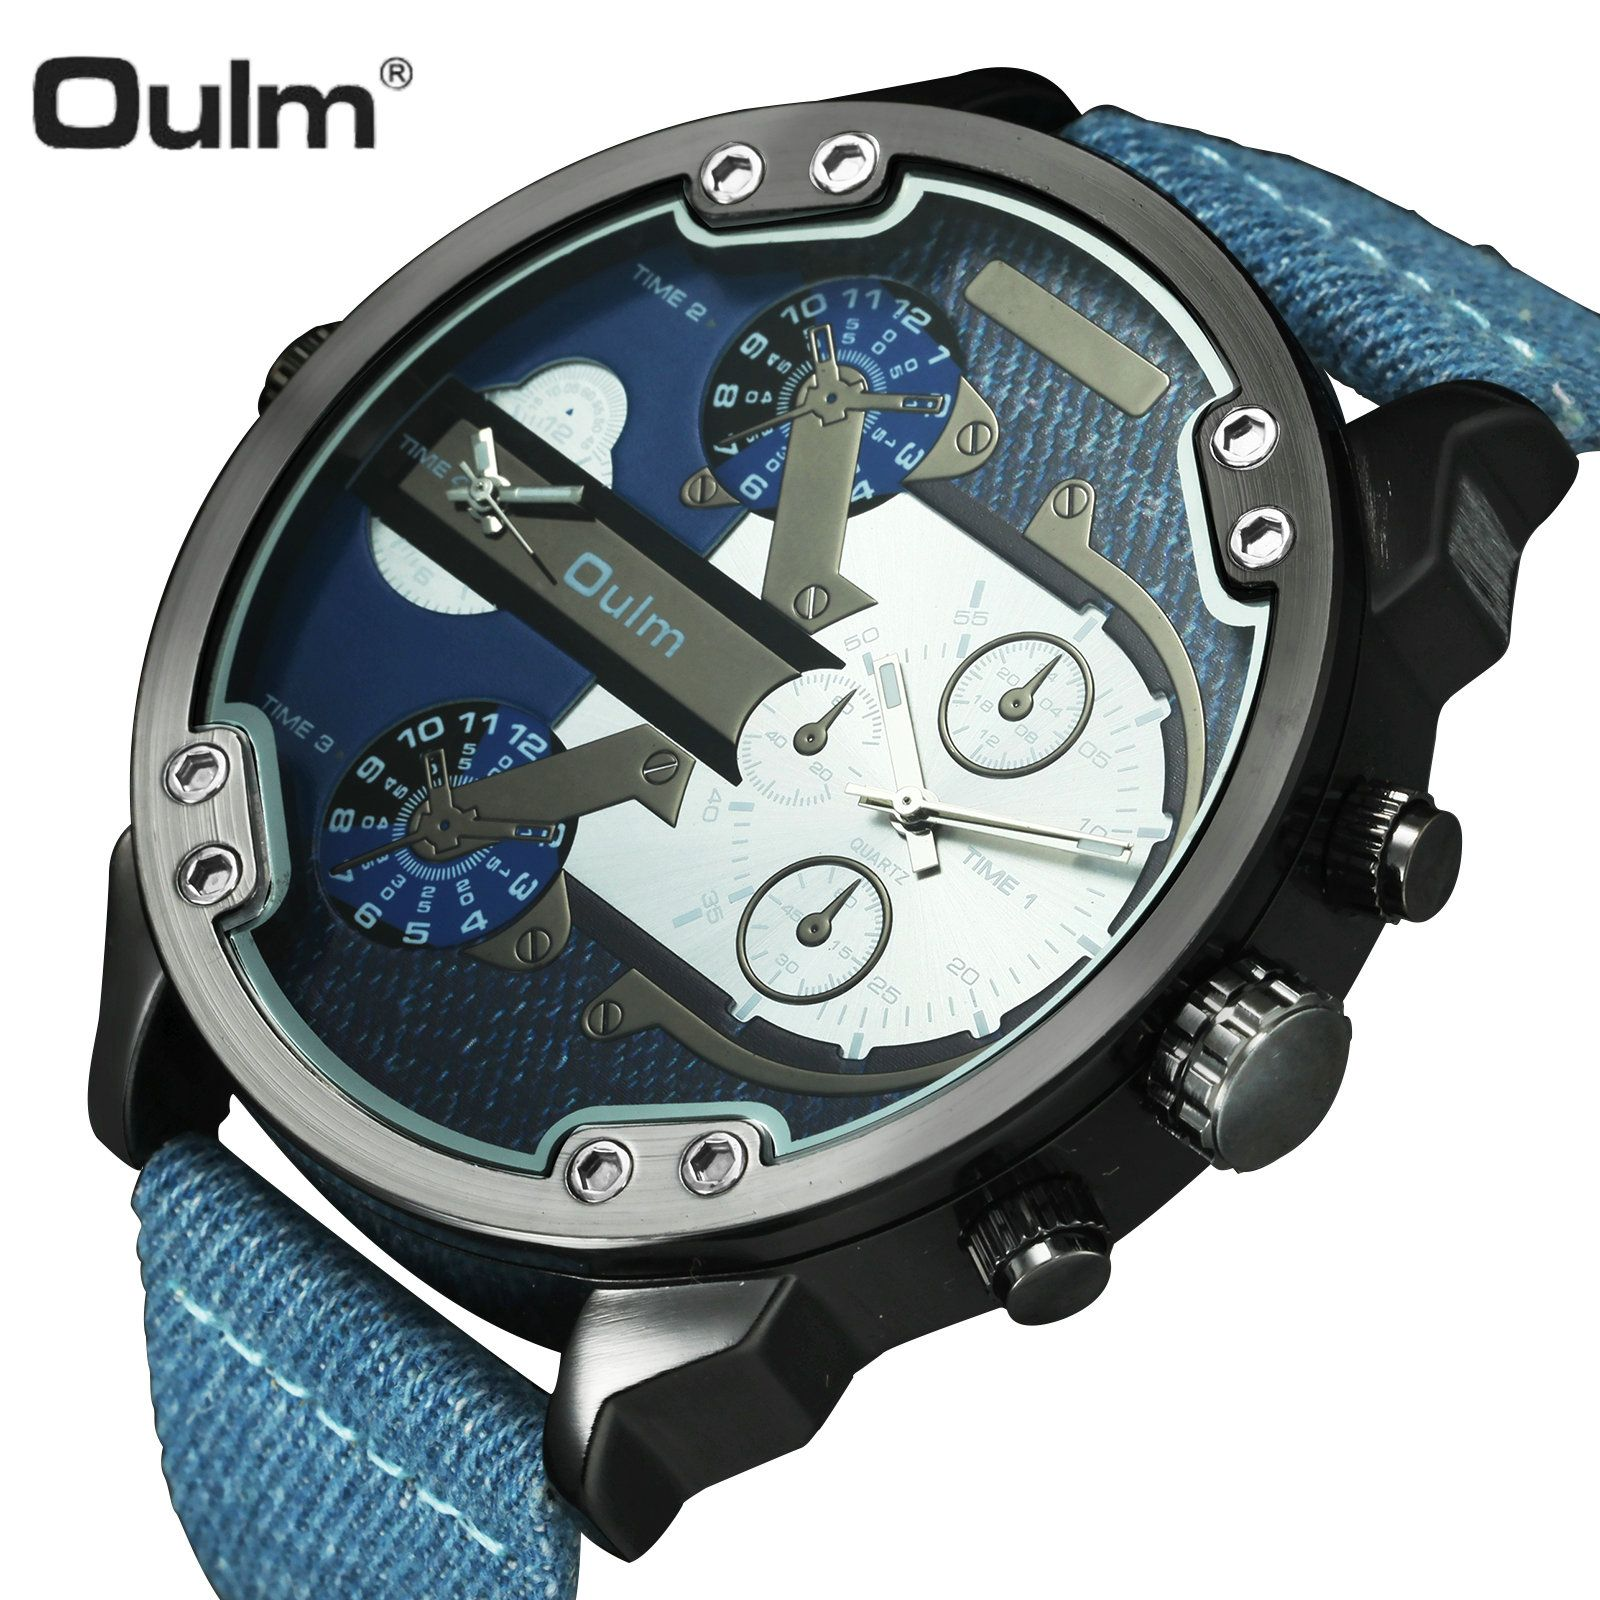 OULM Sports Quartz Watch Men Big Case Military Mens Watches Top Brand Luxury Canvas Strap 2 Time Zone Fashion Casual Wristwatch